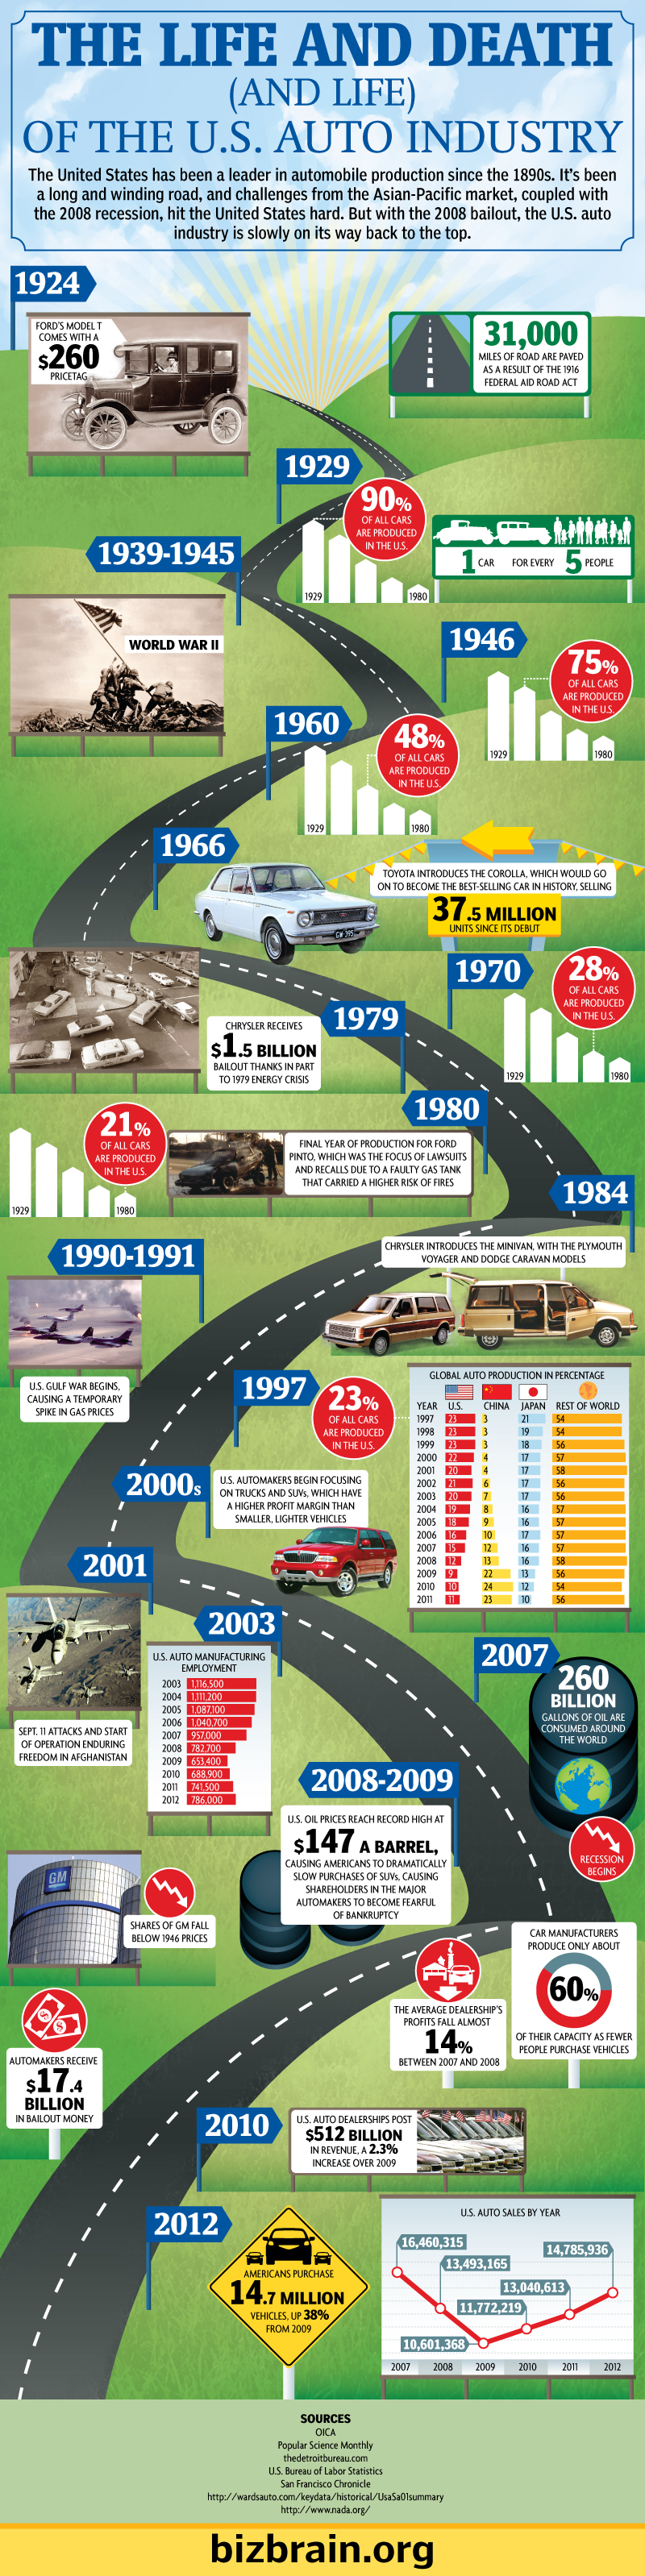 Timeline of the US Auto Industry